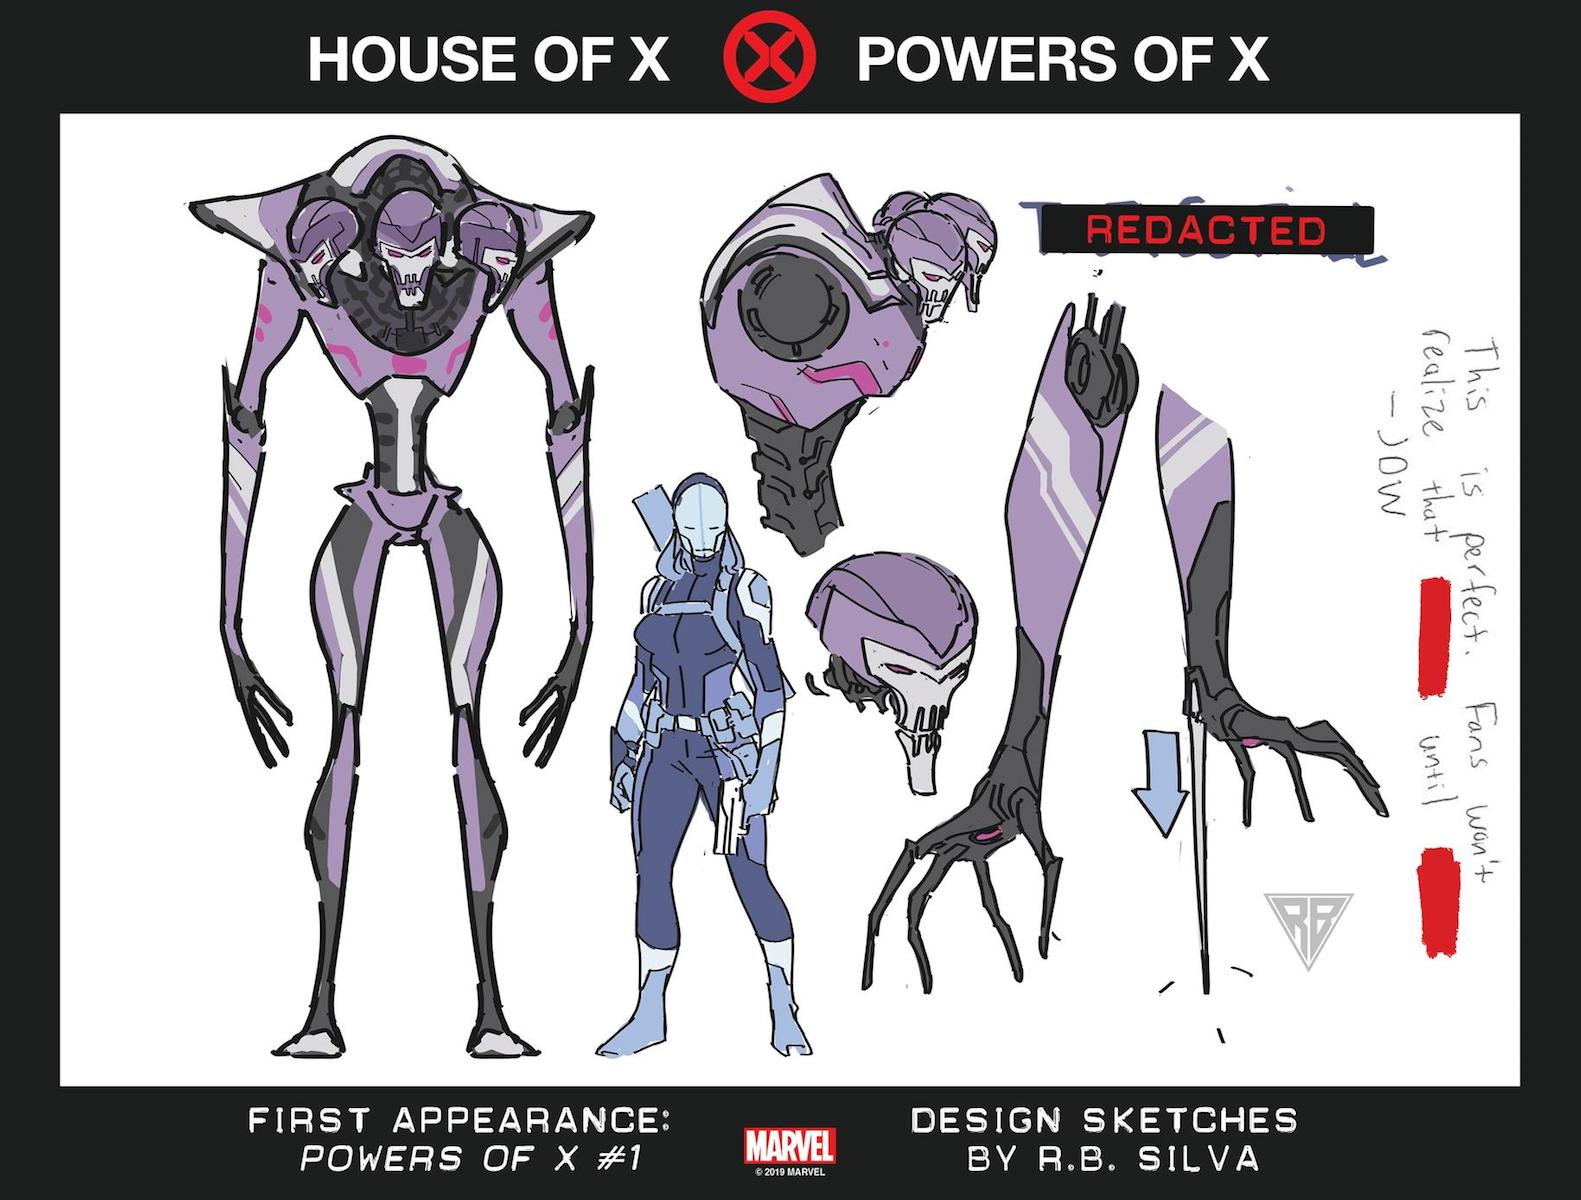 Powers of X Character 1